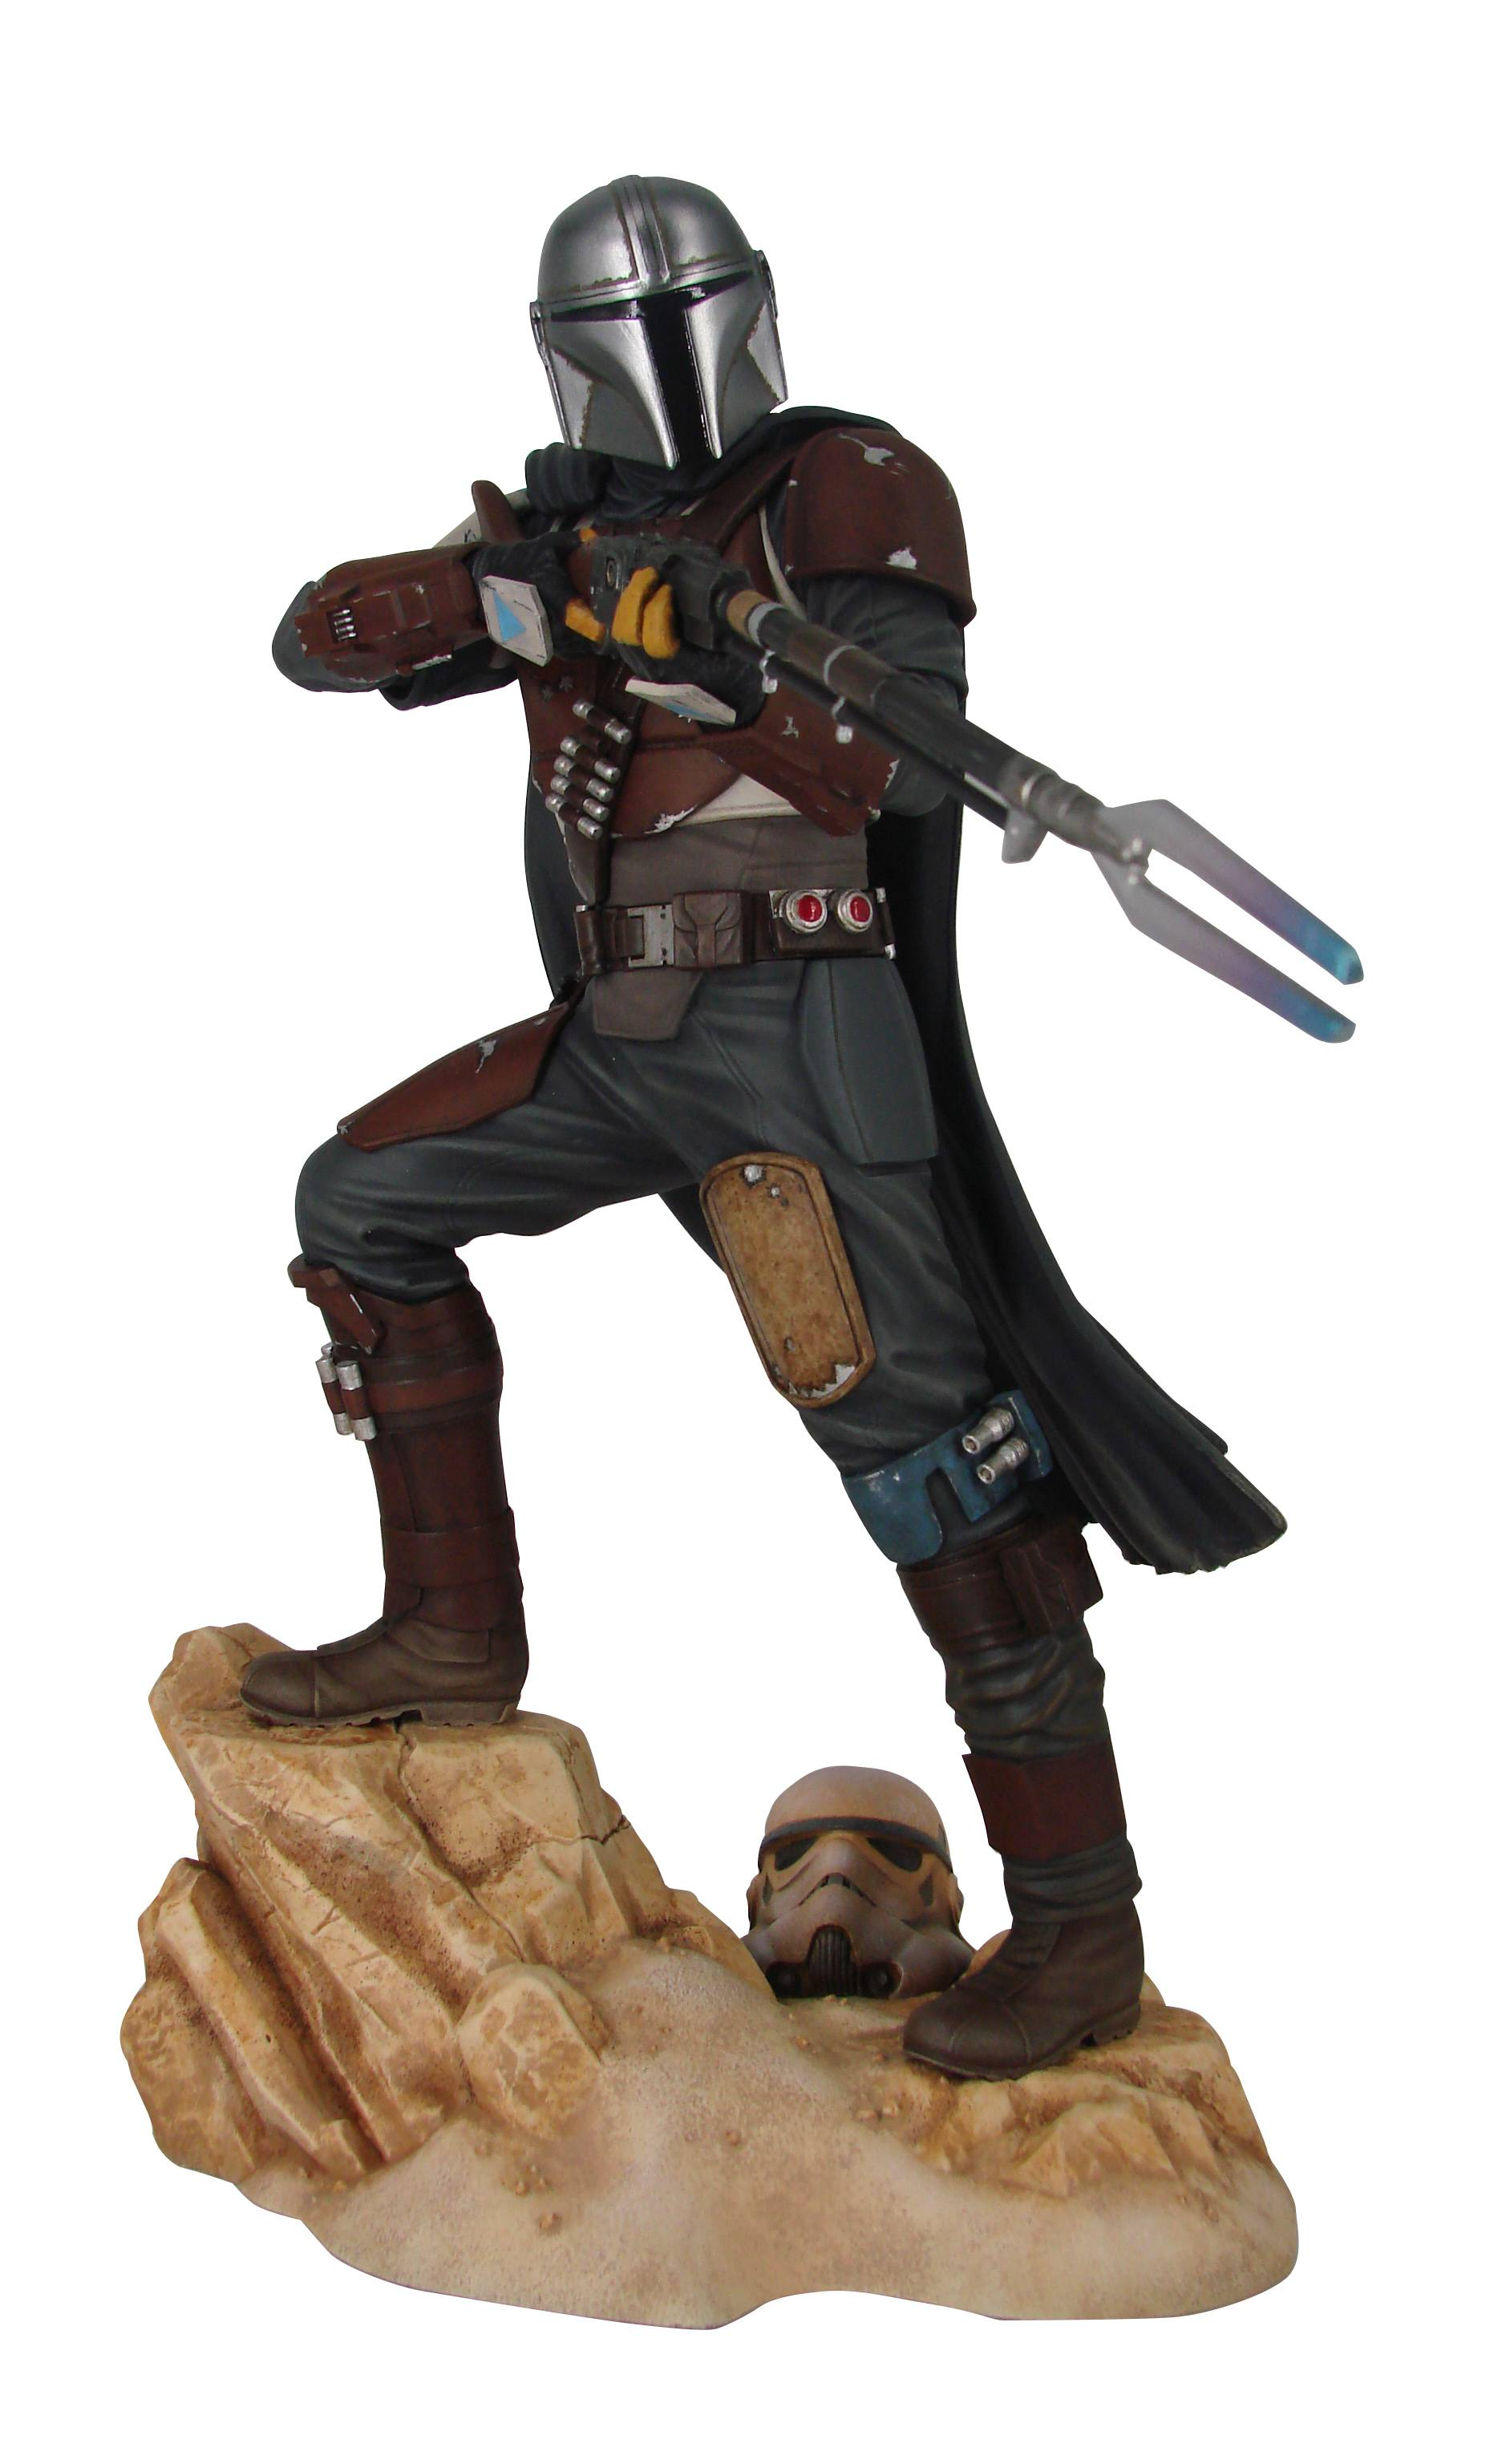 Star Wars Premier Collection - The Mandalorian Mk1 Statue